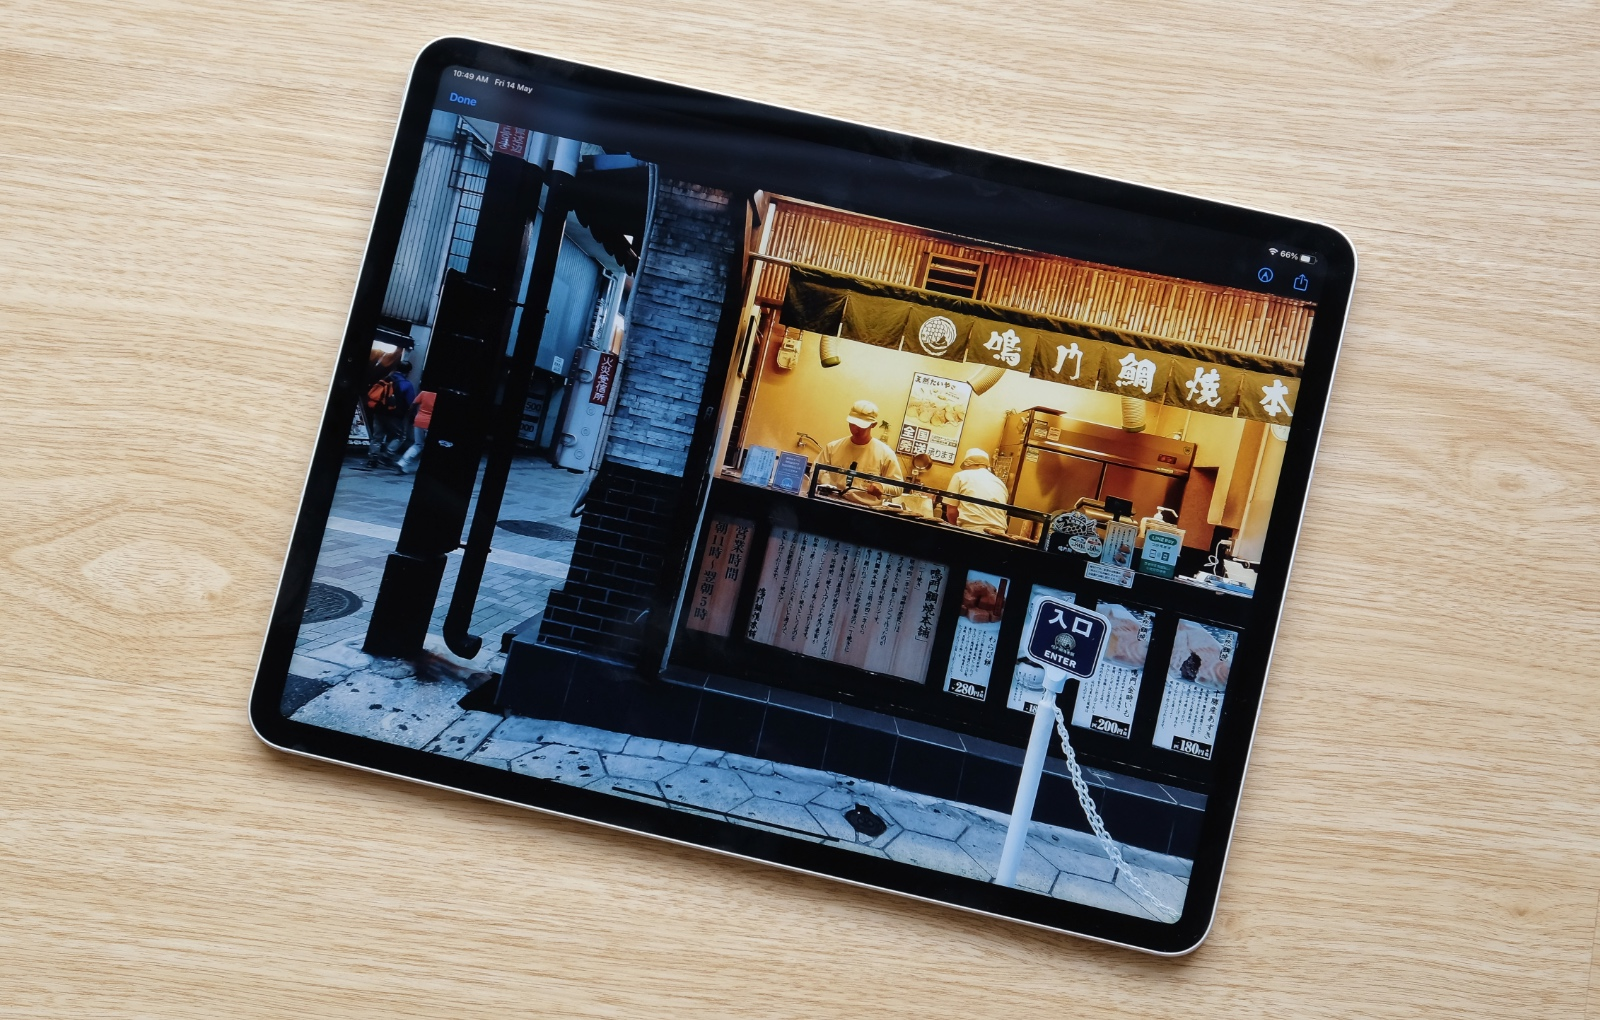 The latest 12.9-inch iPad Pro has the same design as its predecessor. This means a small bezel surrounding the display and flat sides.